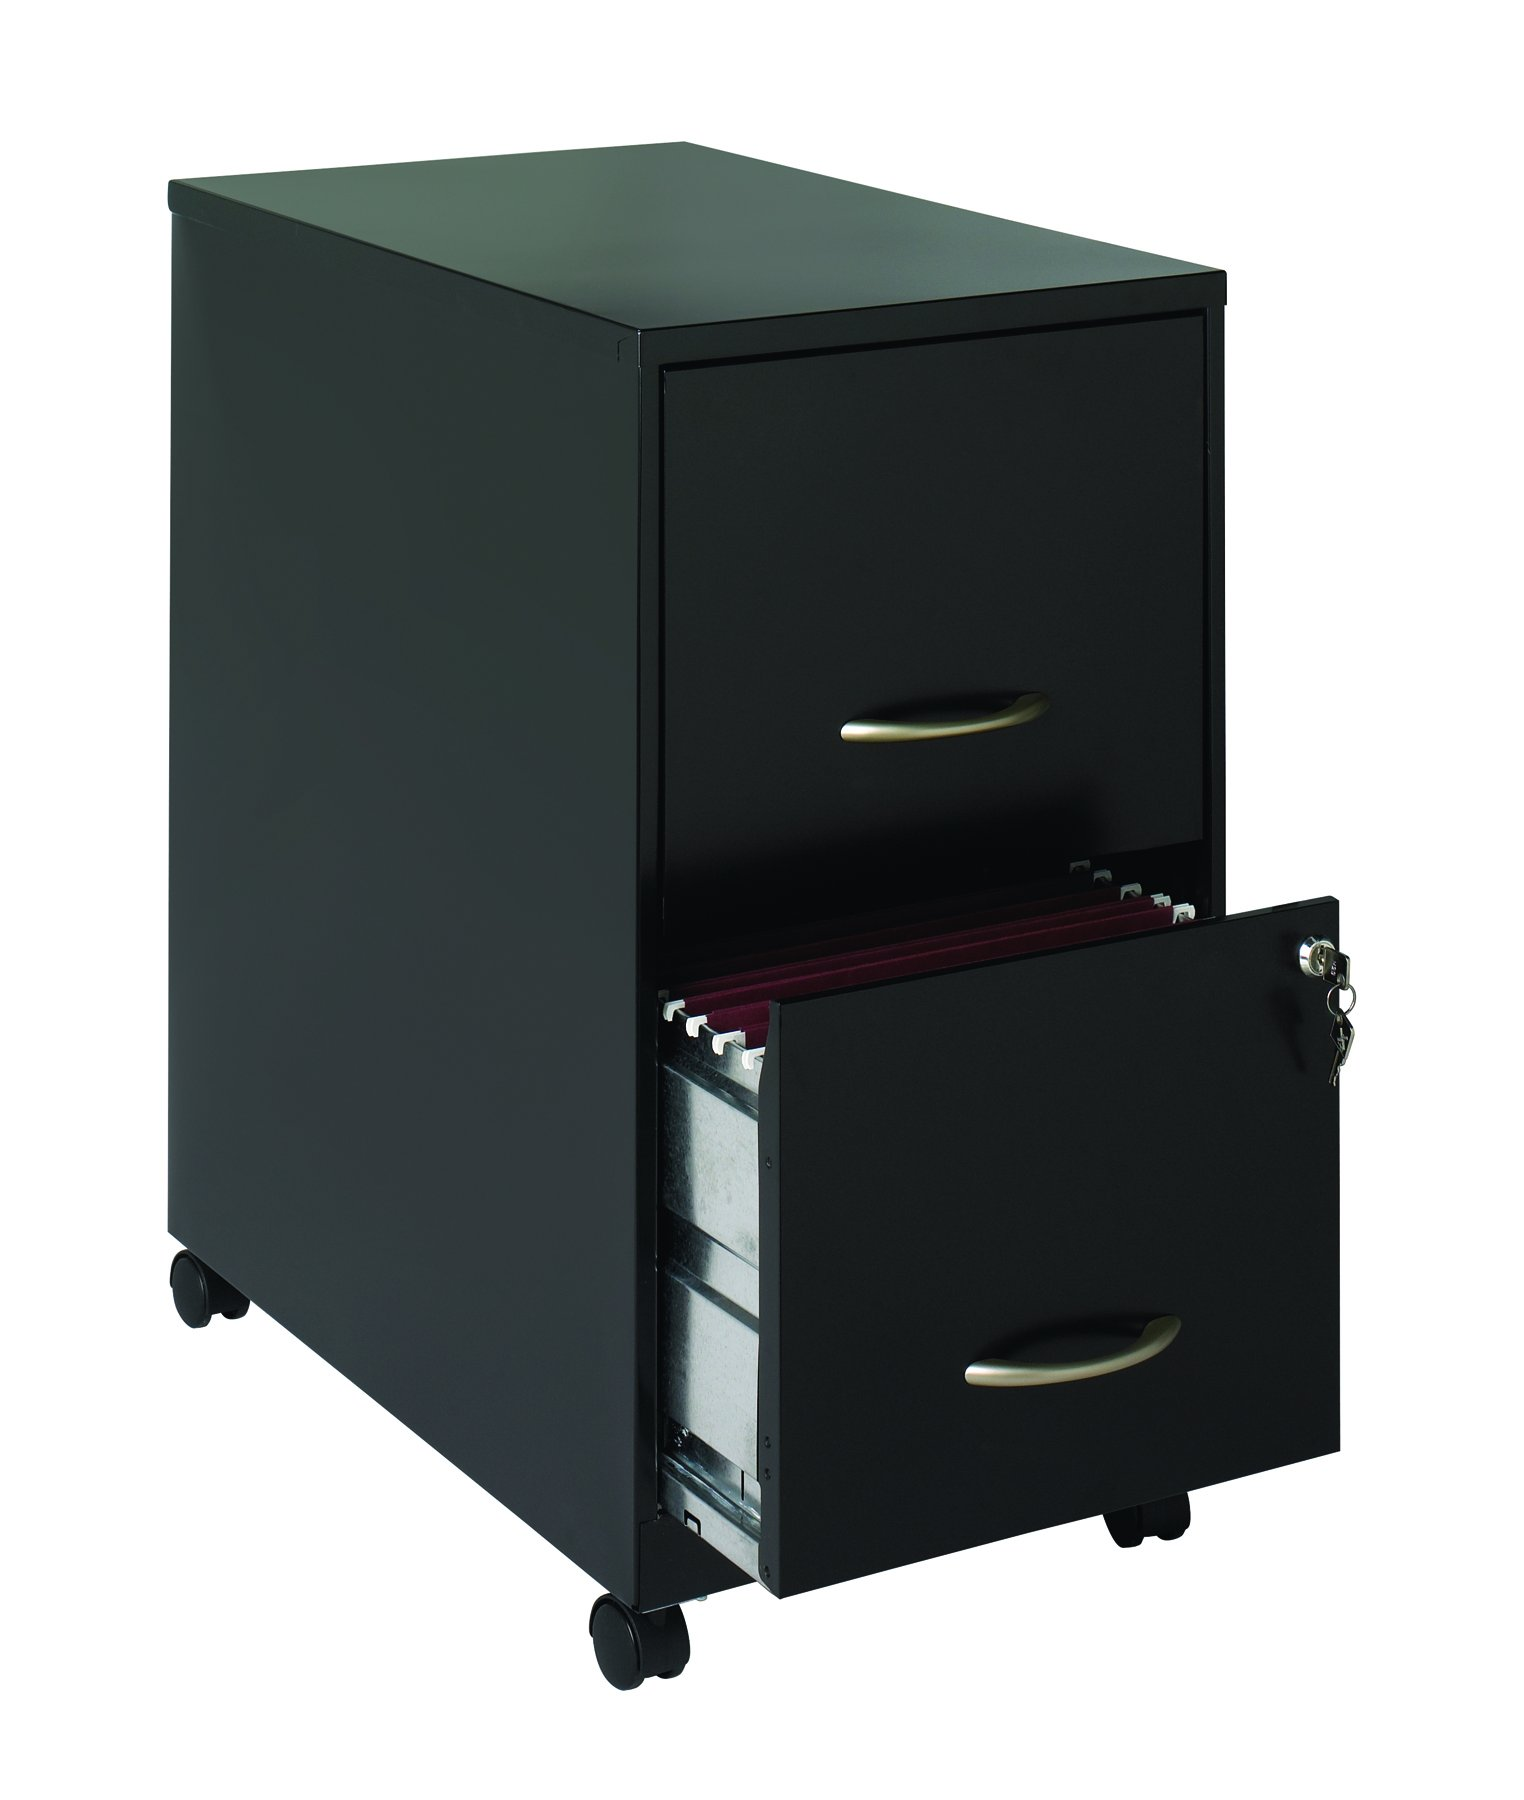 Office Dimensions 22'' Deep 2 Drawer Letter-Sized Mobile Metal File Cabinet, Black (21067)